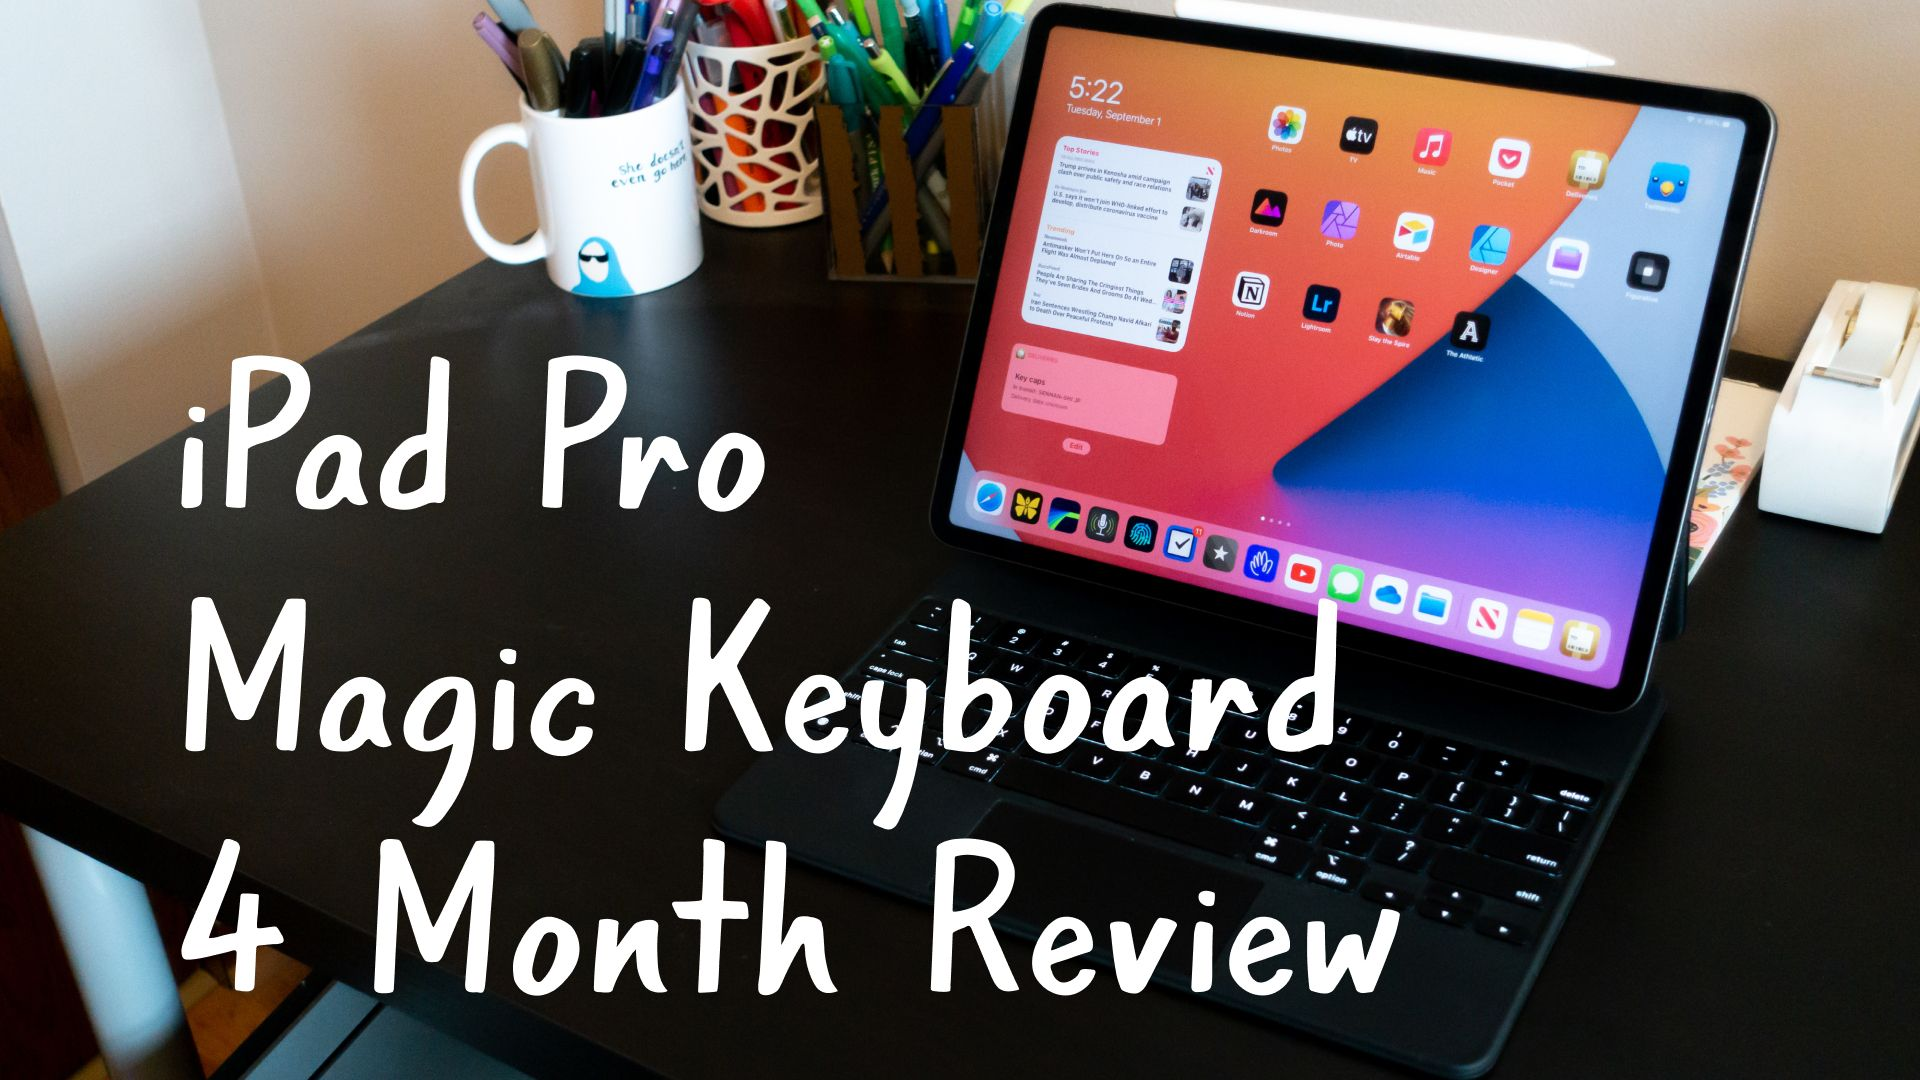 iPad Pro Magic Keyboard 4 Month Video Review